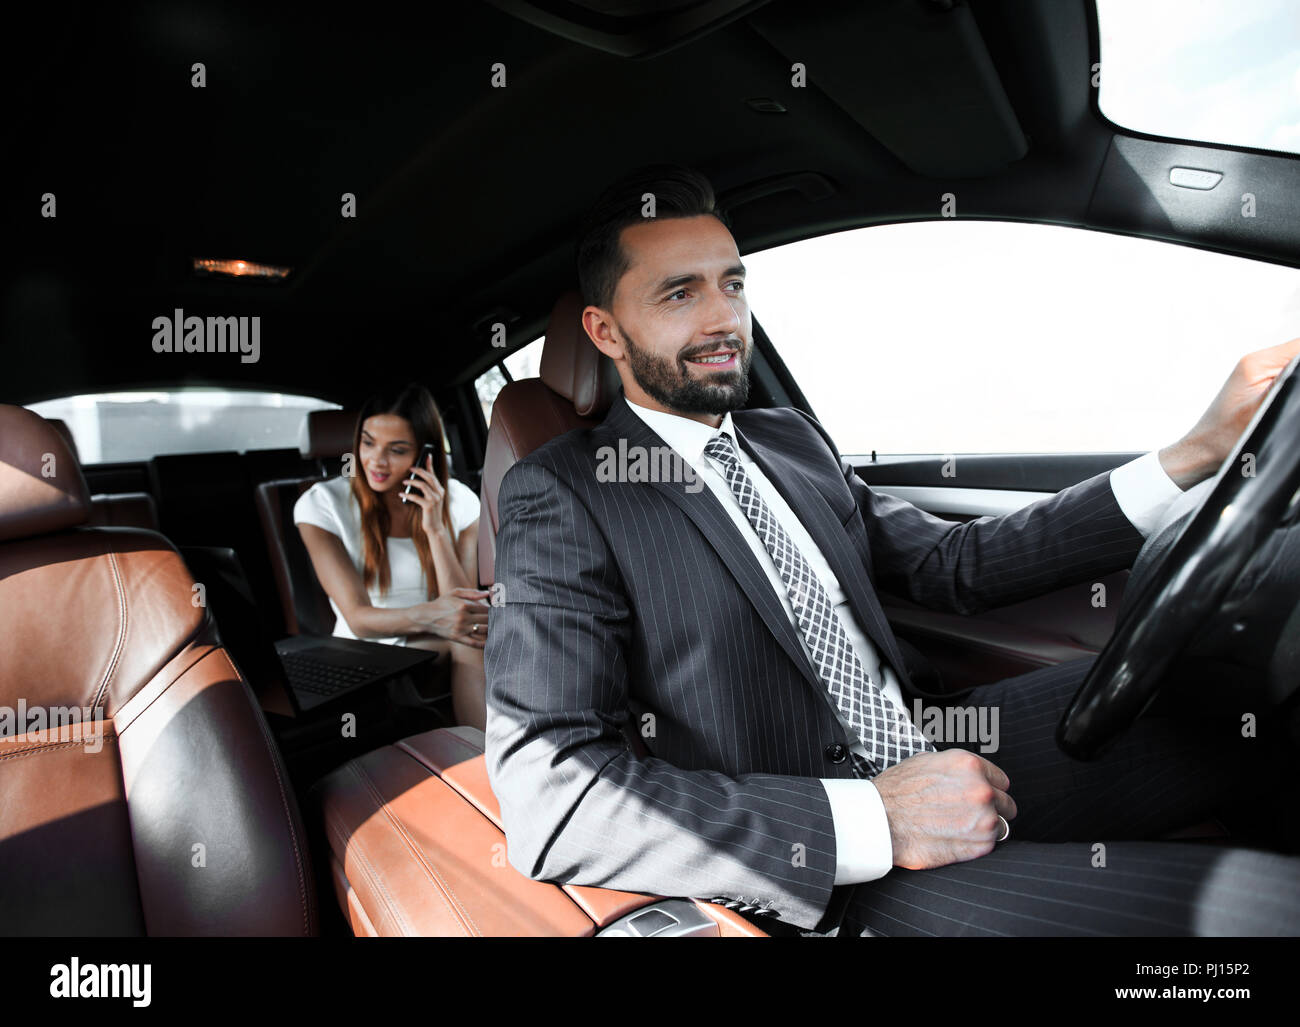 Attractive elegant serious man drives good car Stock Photo